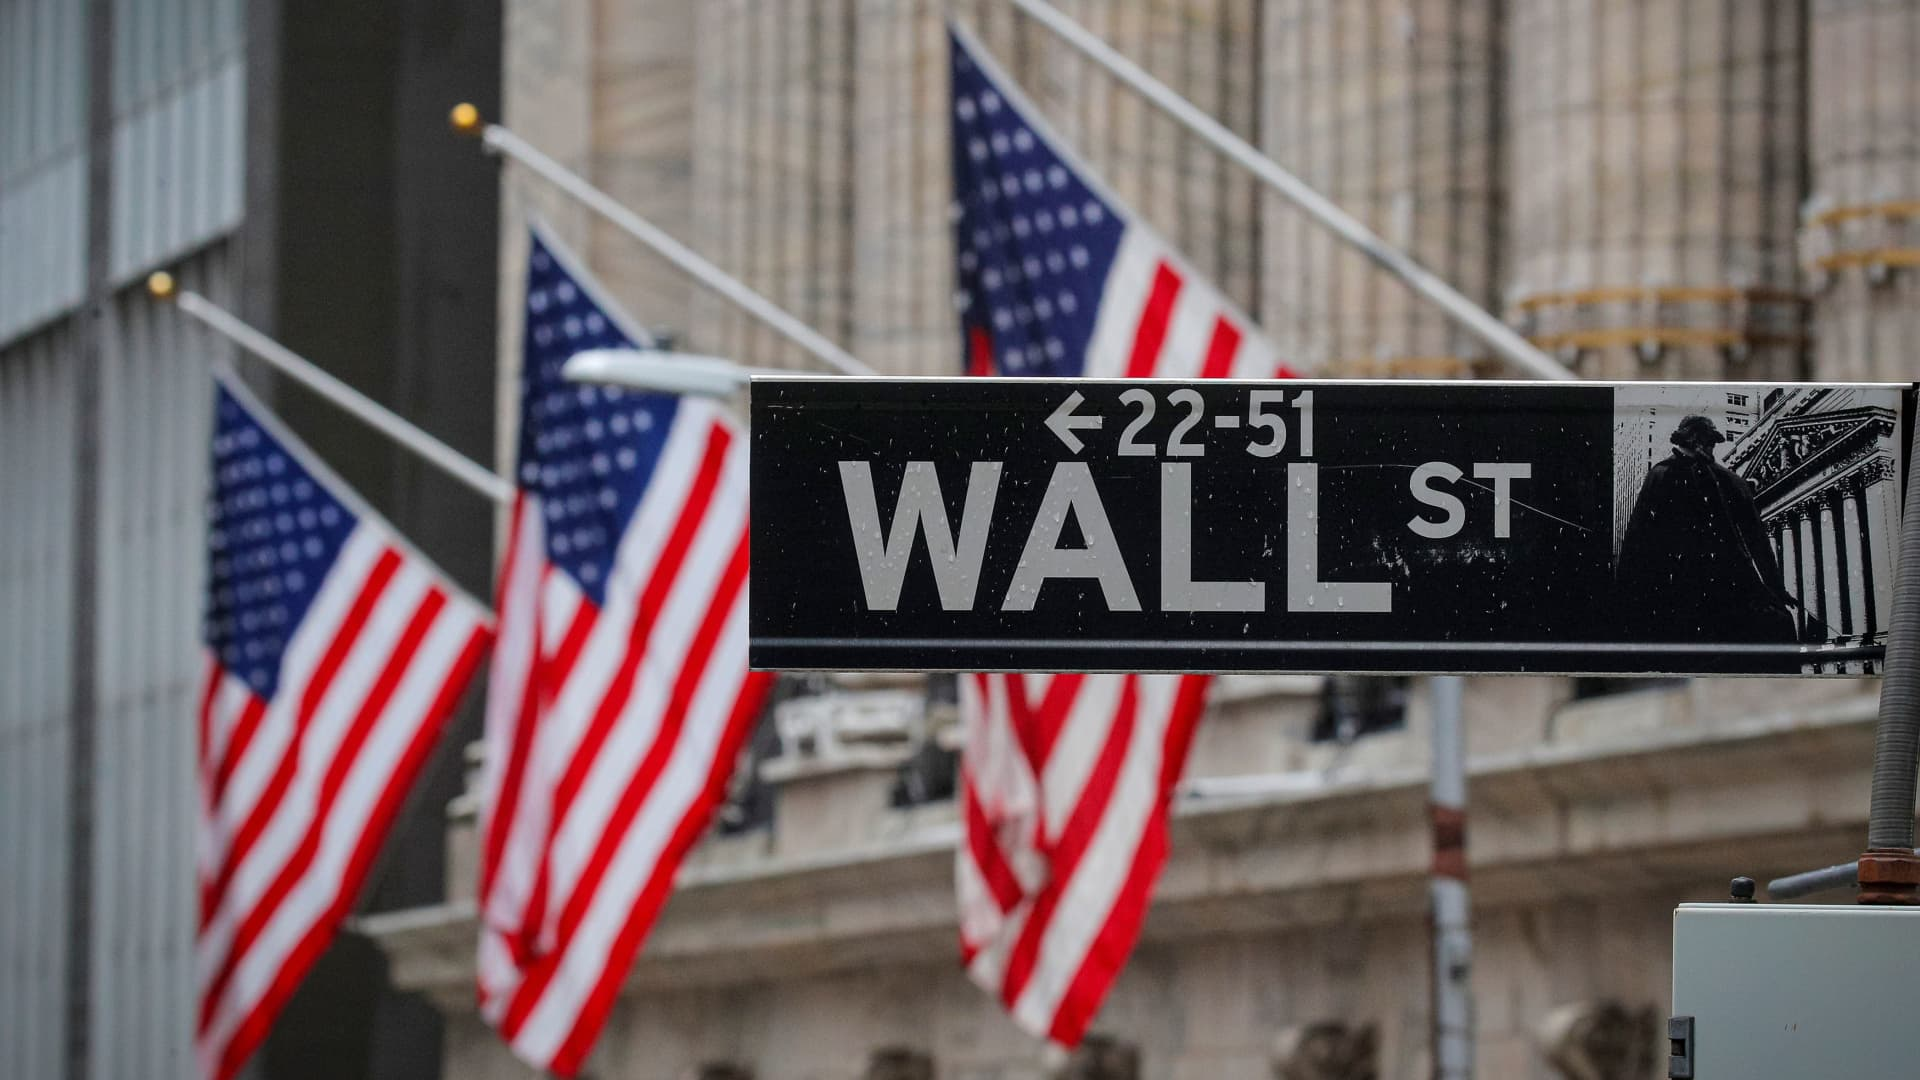 The Wall Street sign is seen outside The New York Stock Exchange (NYSE) in New York, February 16, 2021.